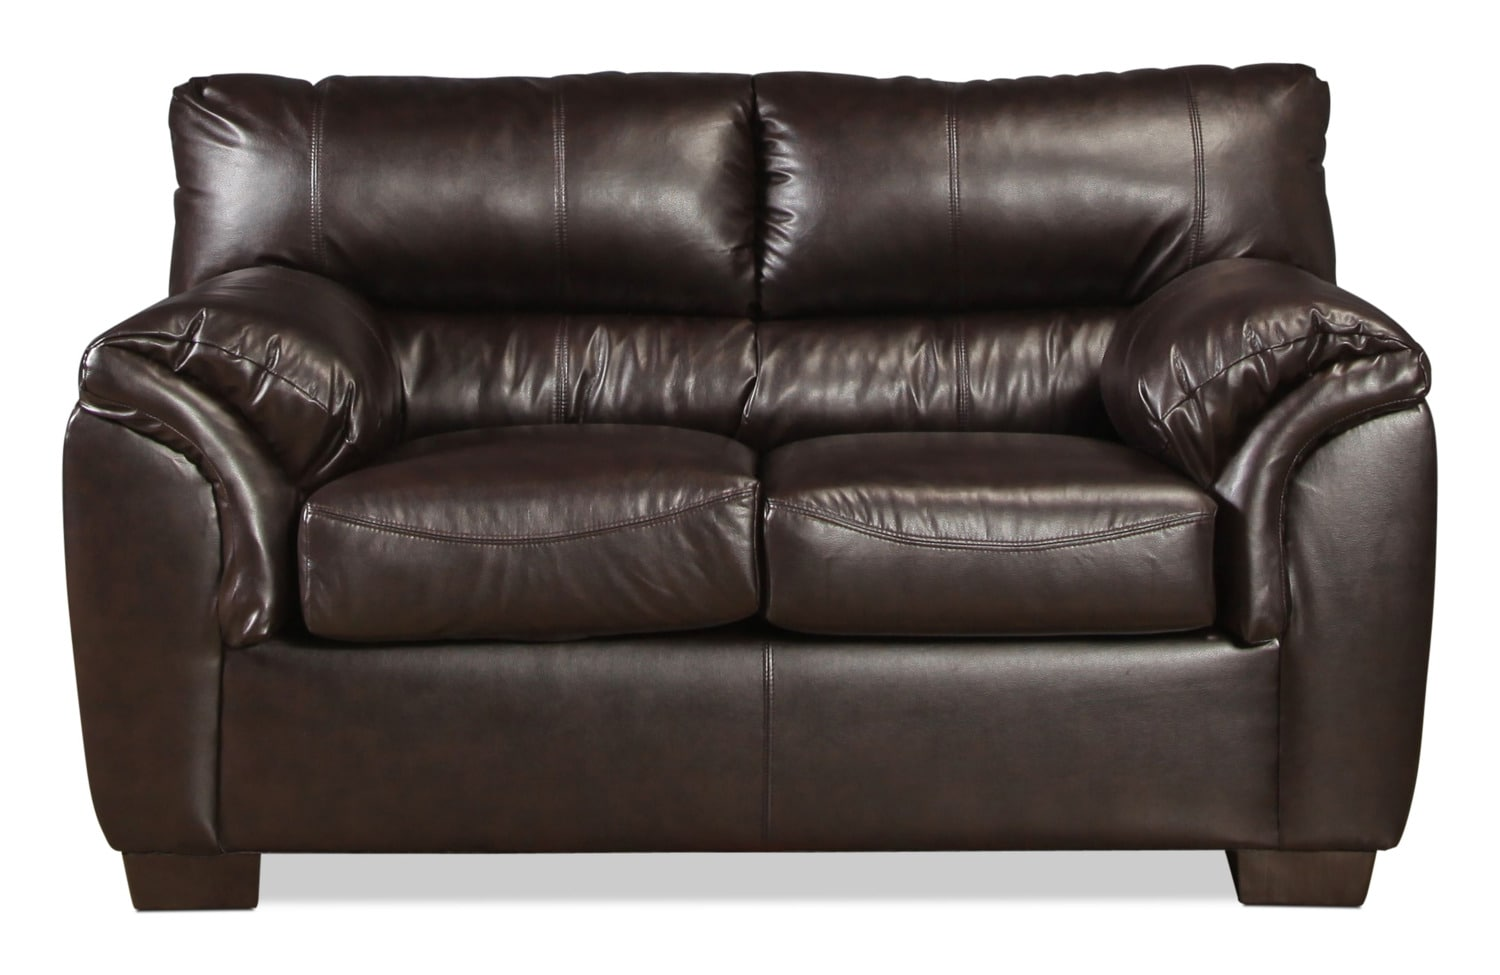 Westminster Loveseat - Walnut